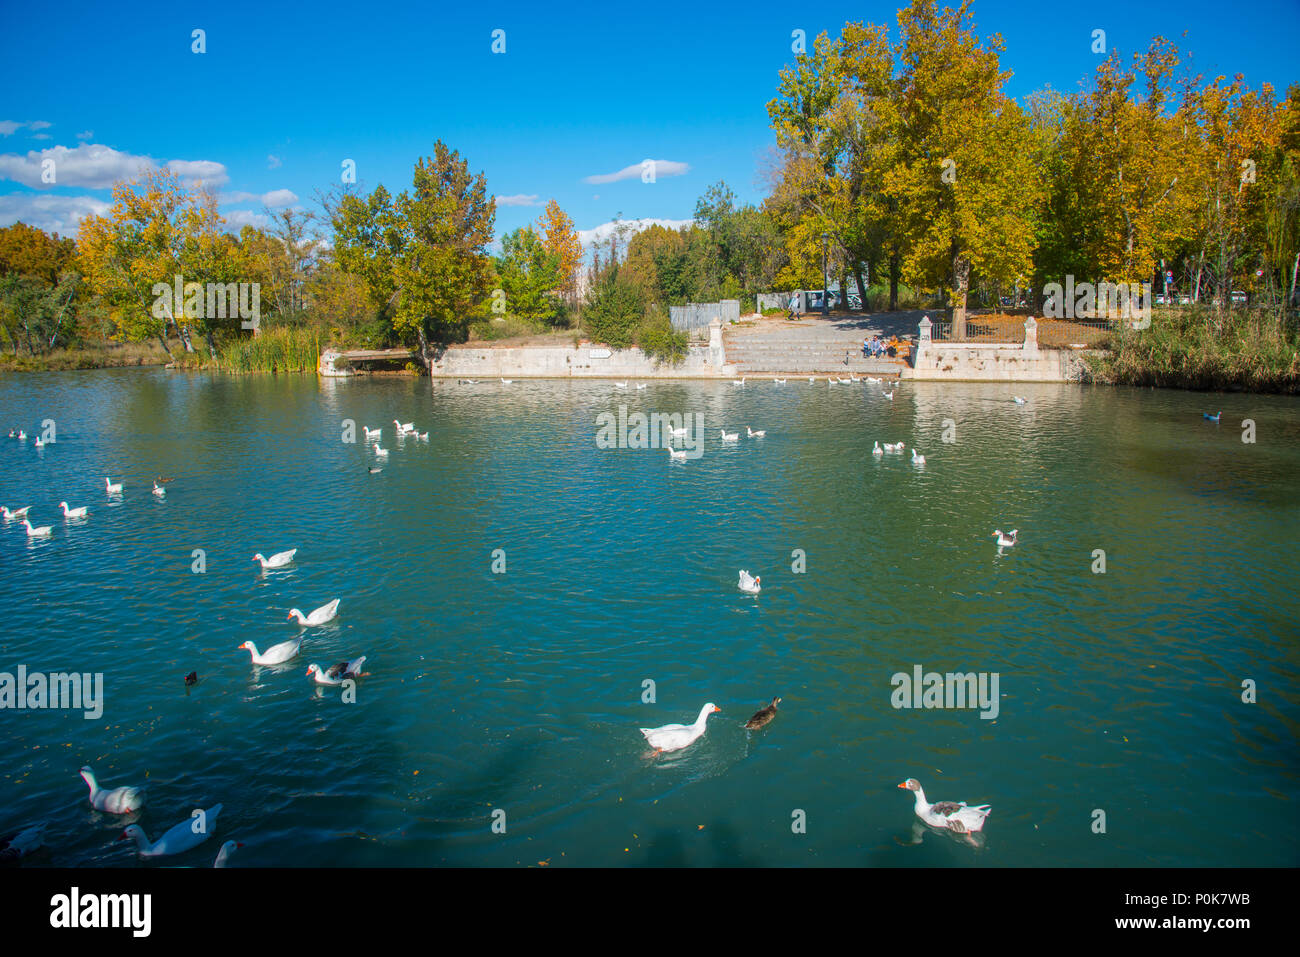 Canal of river Tajo. Aranjuez, Madrid province, Spain. - Stock Image